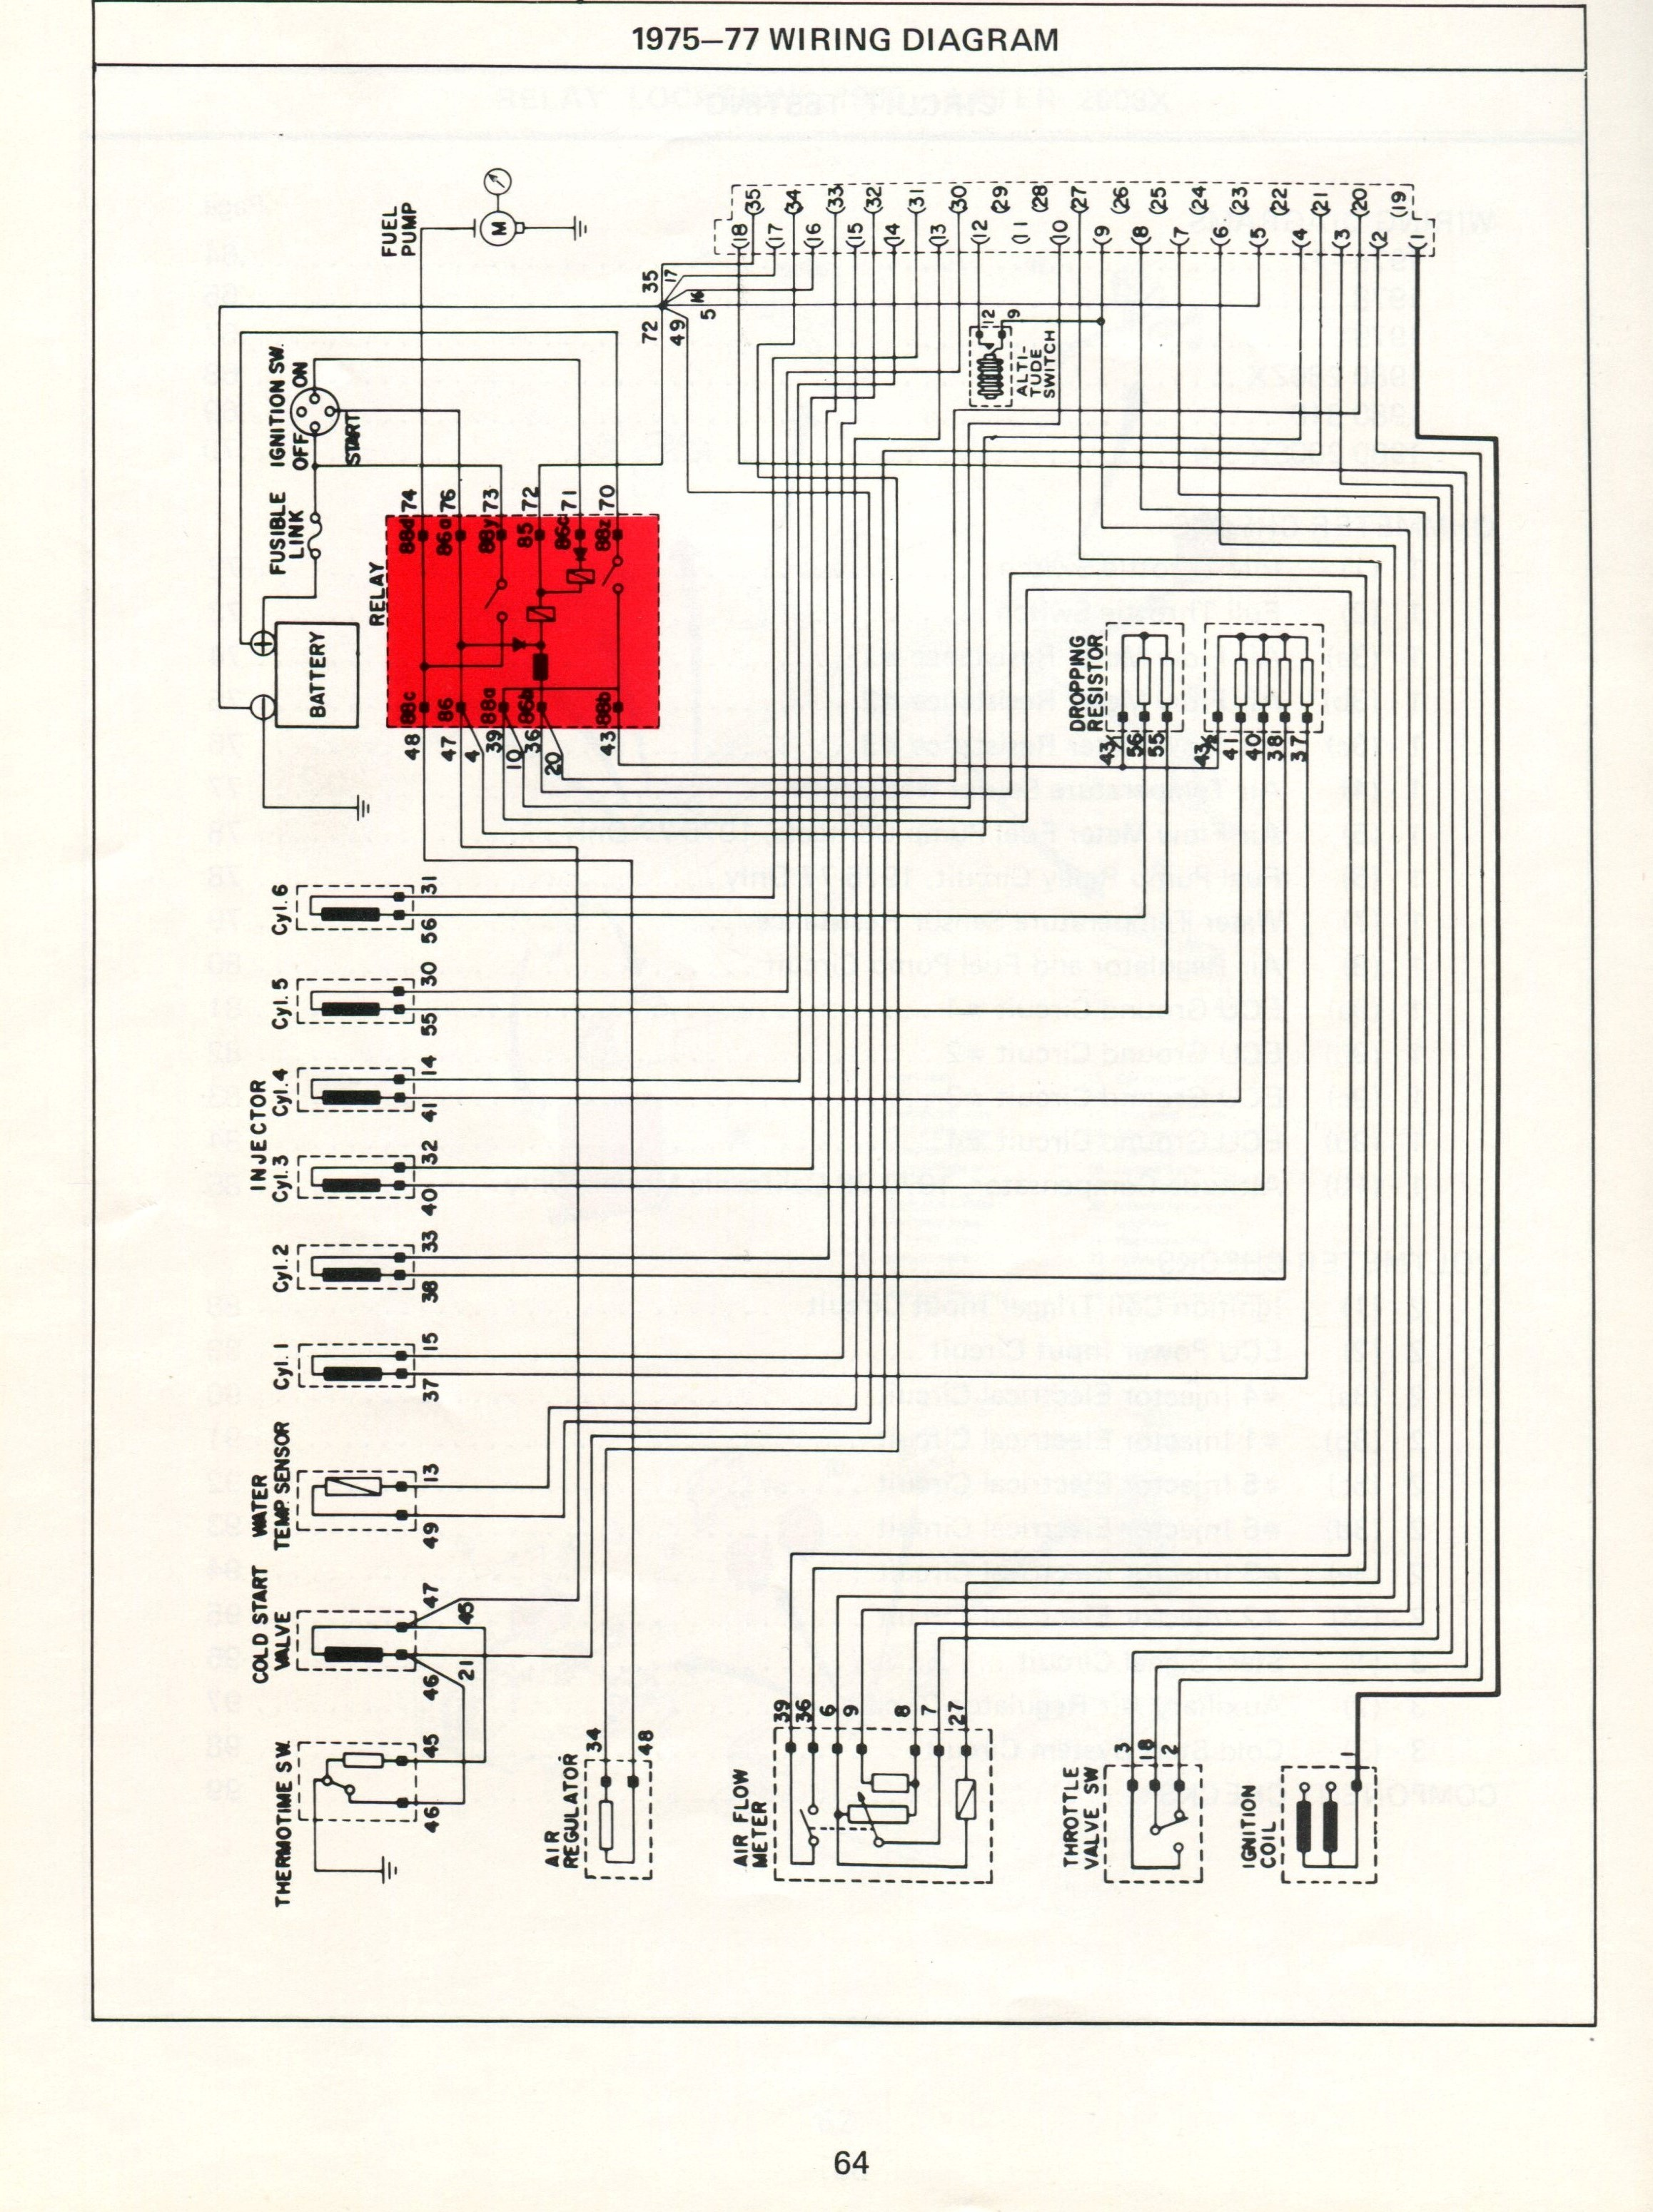 1975 280z Wiring Diagram Books Of Datsun Electronic Fuel Injection Diagrams Rh Datsunforum Com